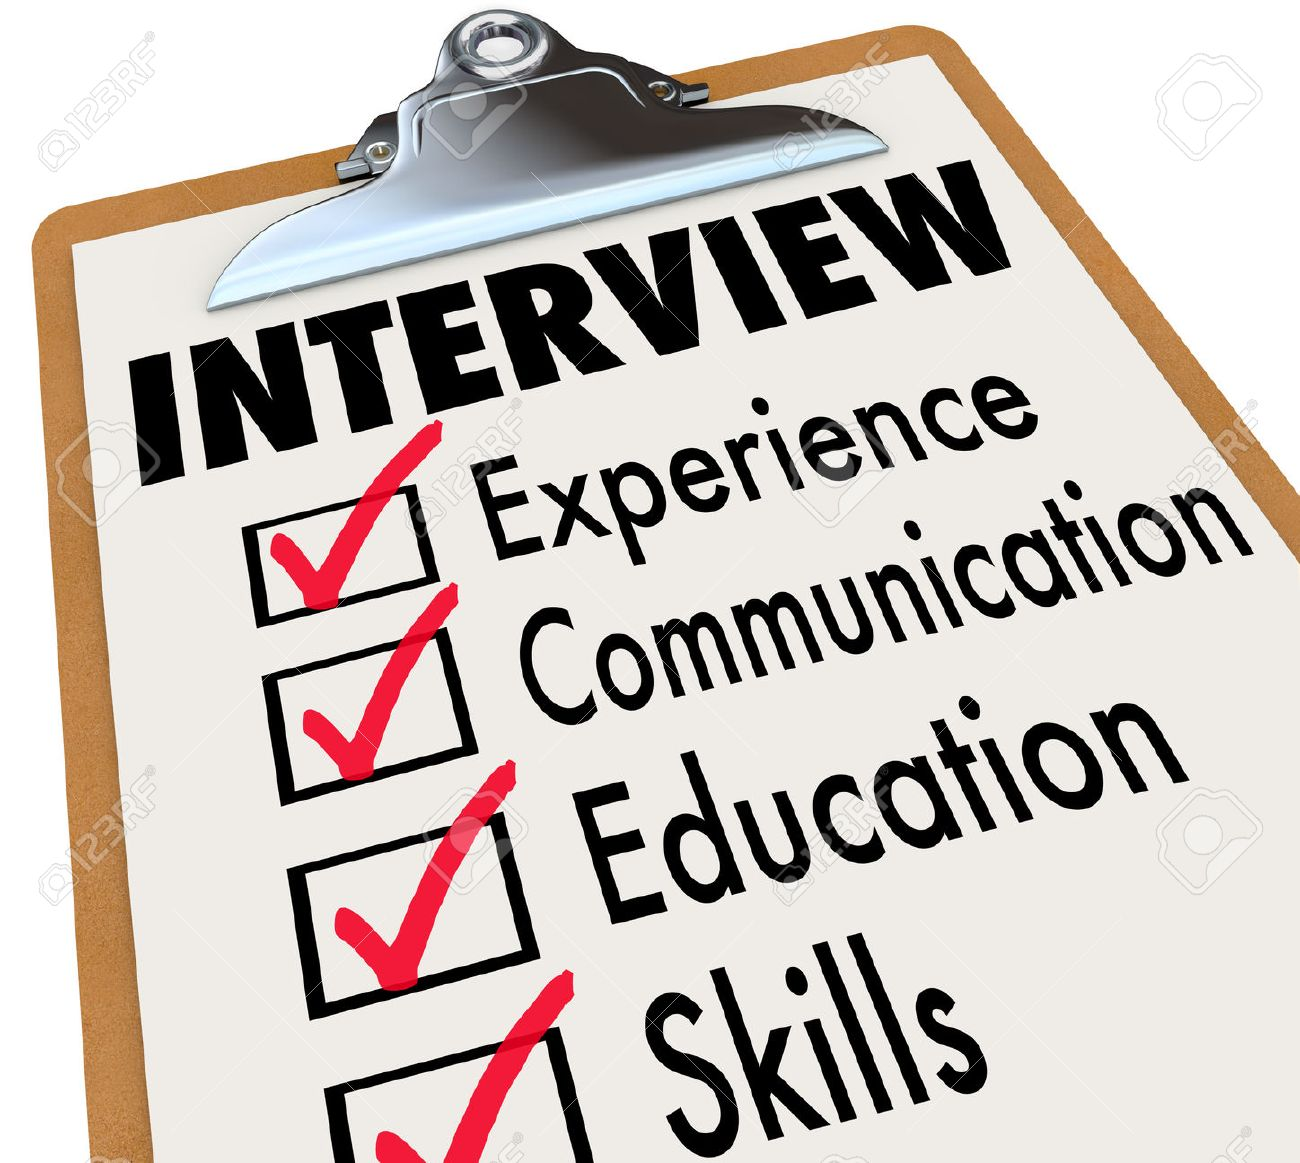 interview qualifications a job candidate must possess on a checklist clipboard including experience communication